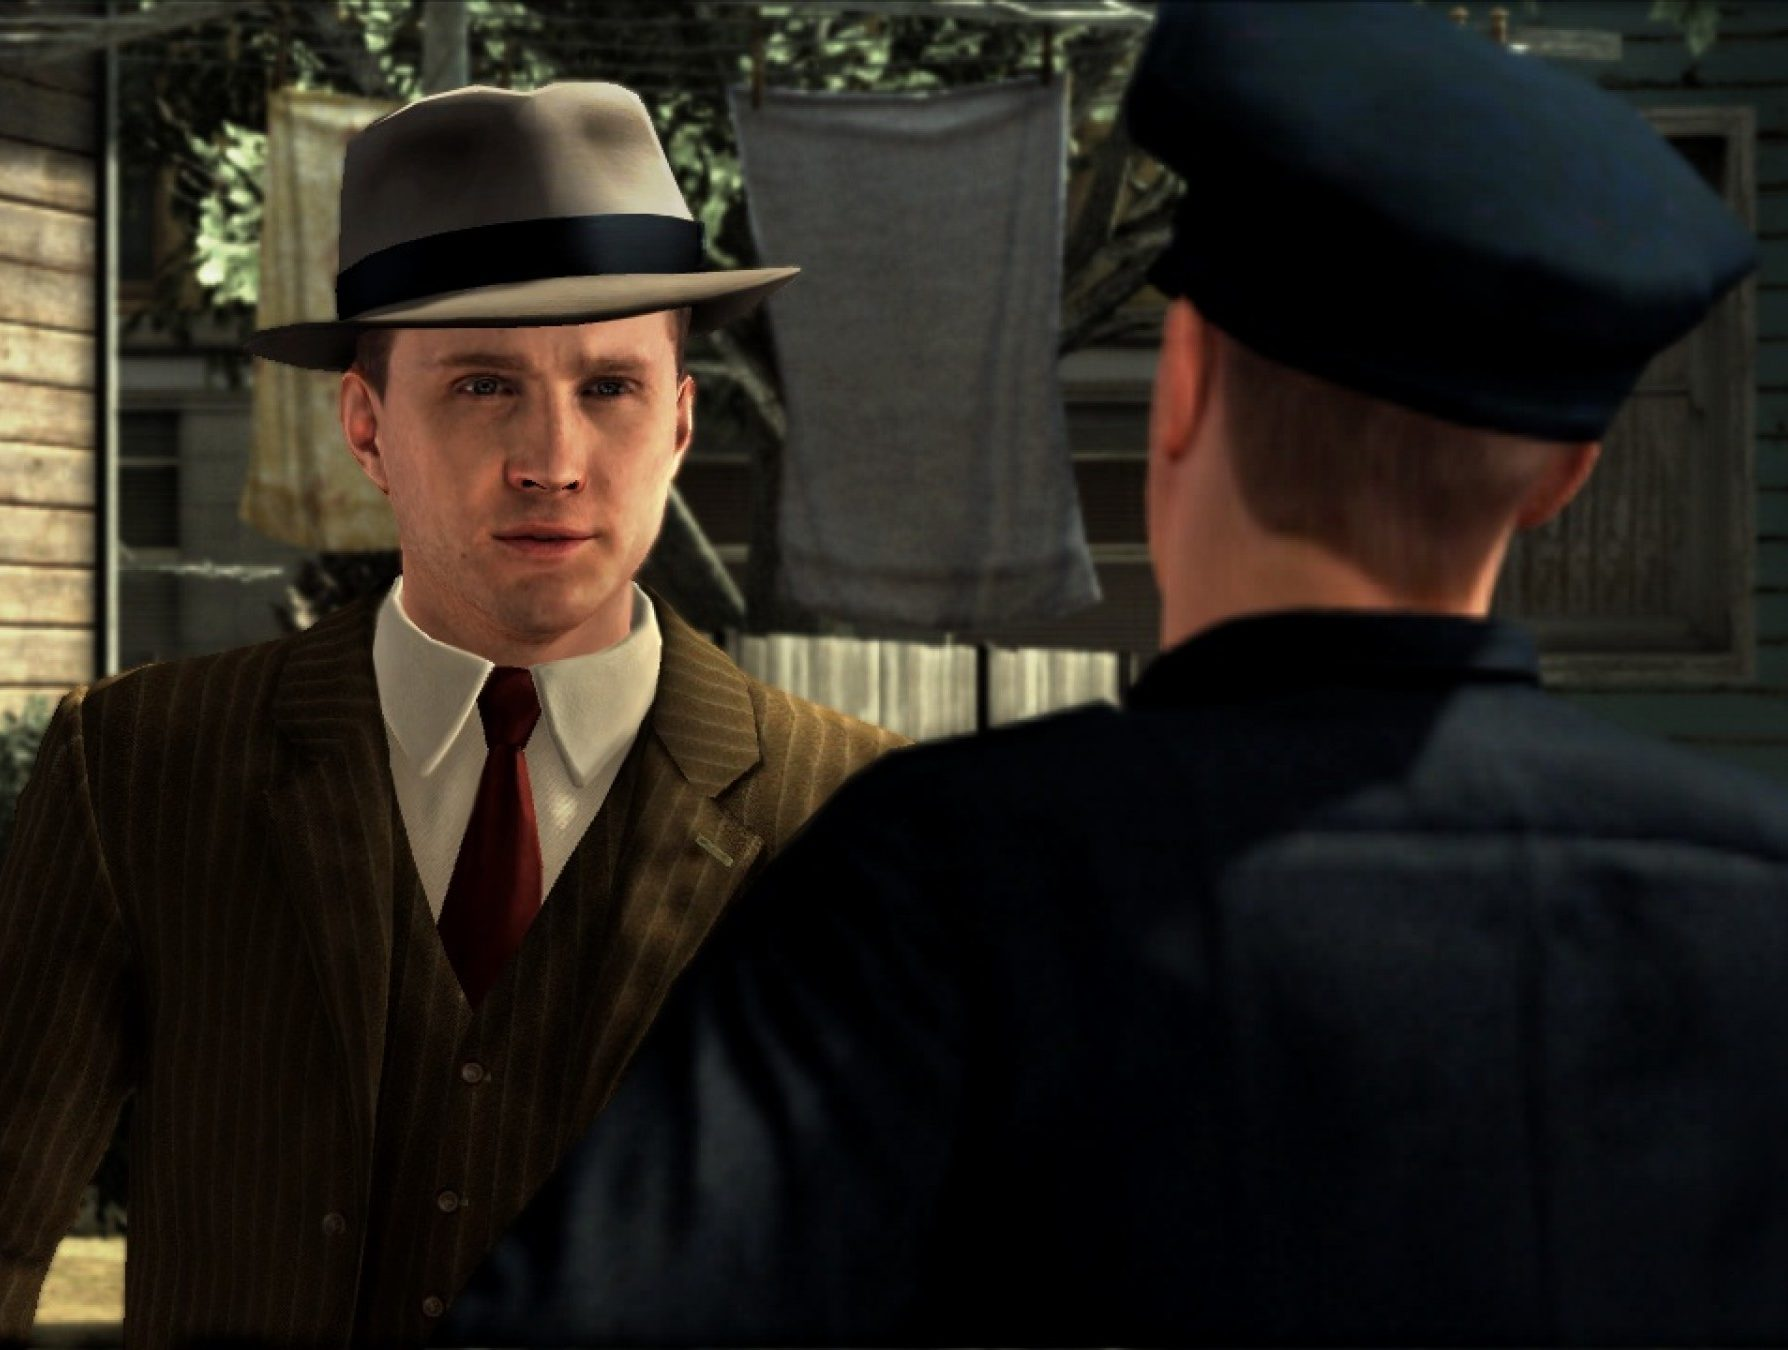 la noire screenshot ps3 145 e1605186661940 20 Video Games You Never Knew Were Inspired By Famous Movies